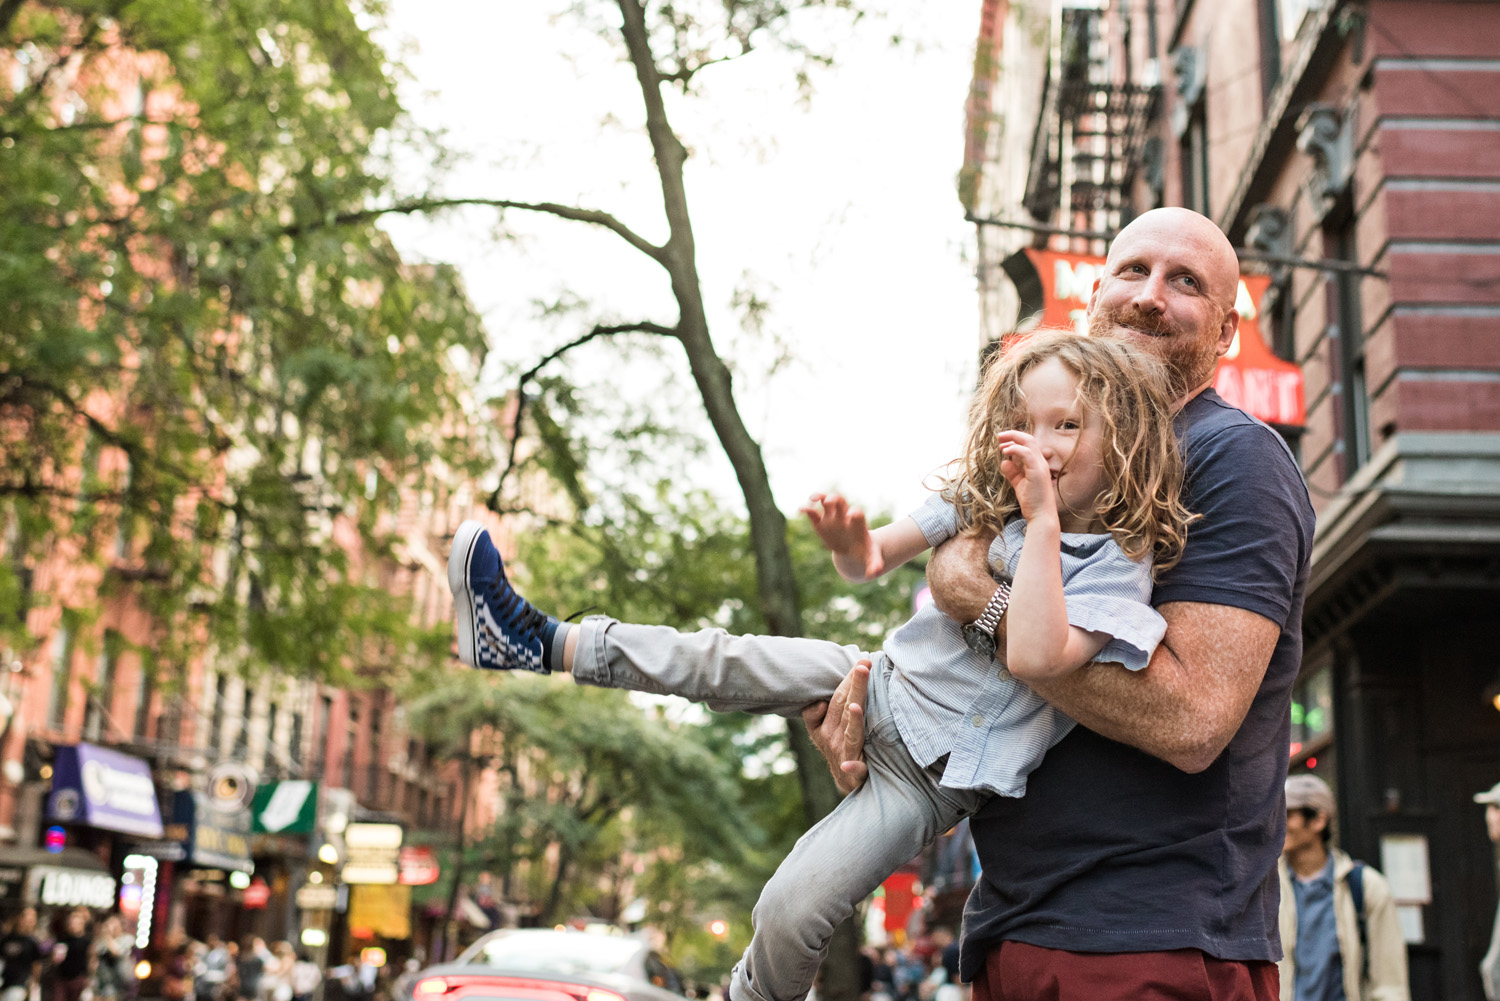 New York City Family Photographer-09292018_301.jpg